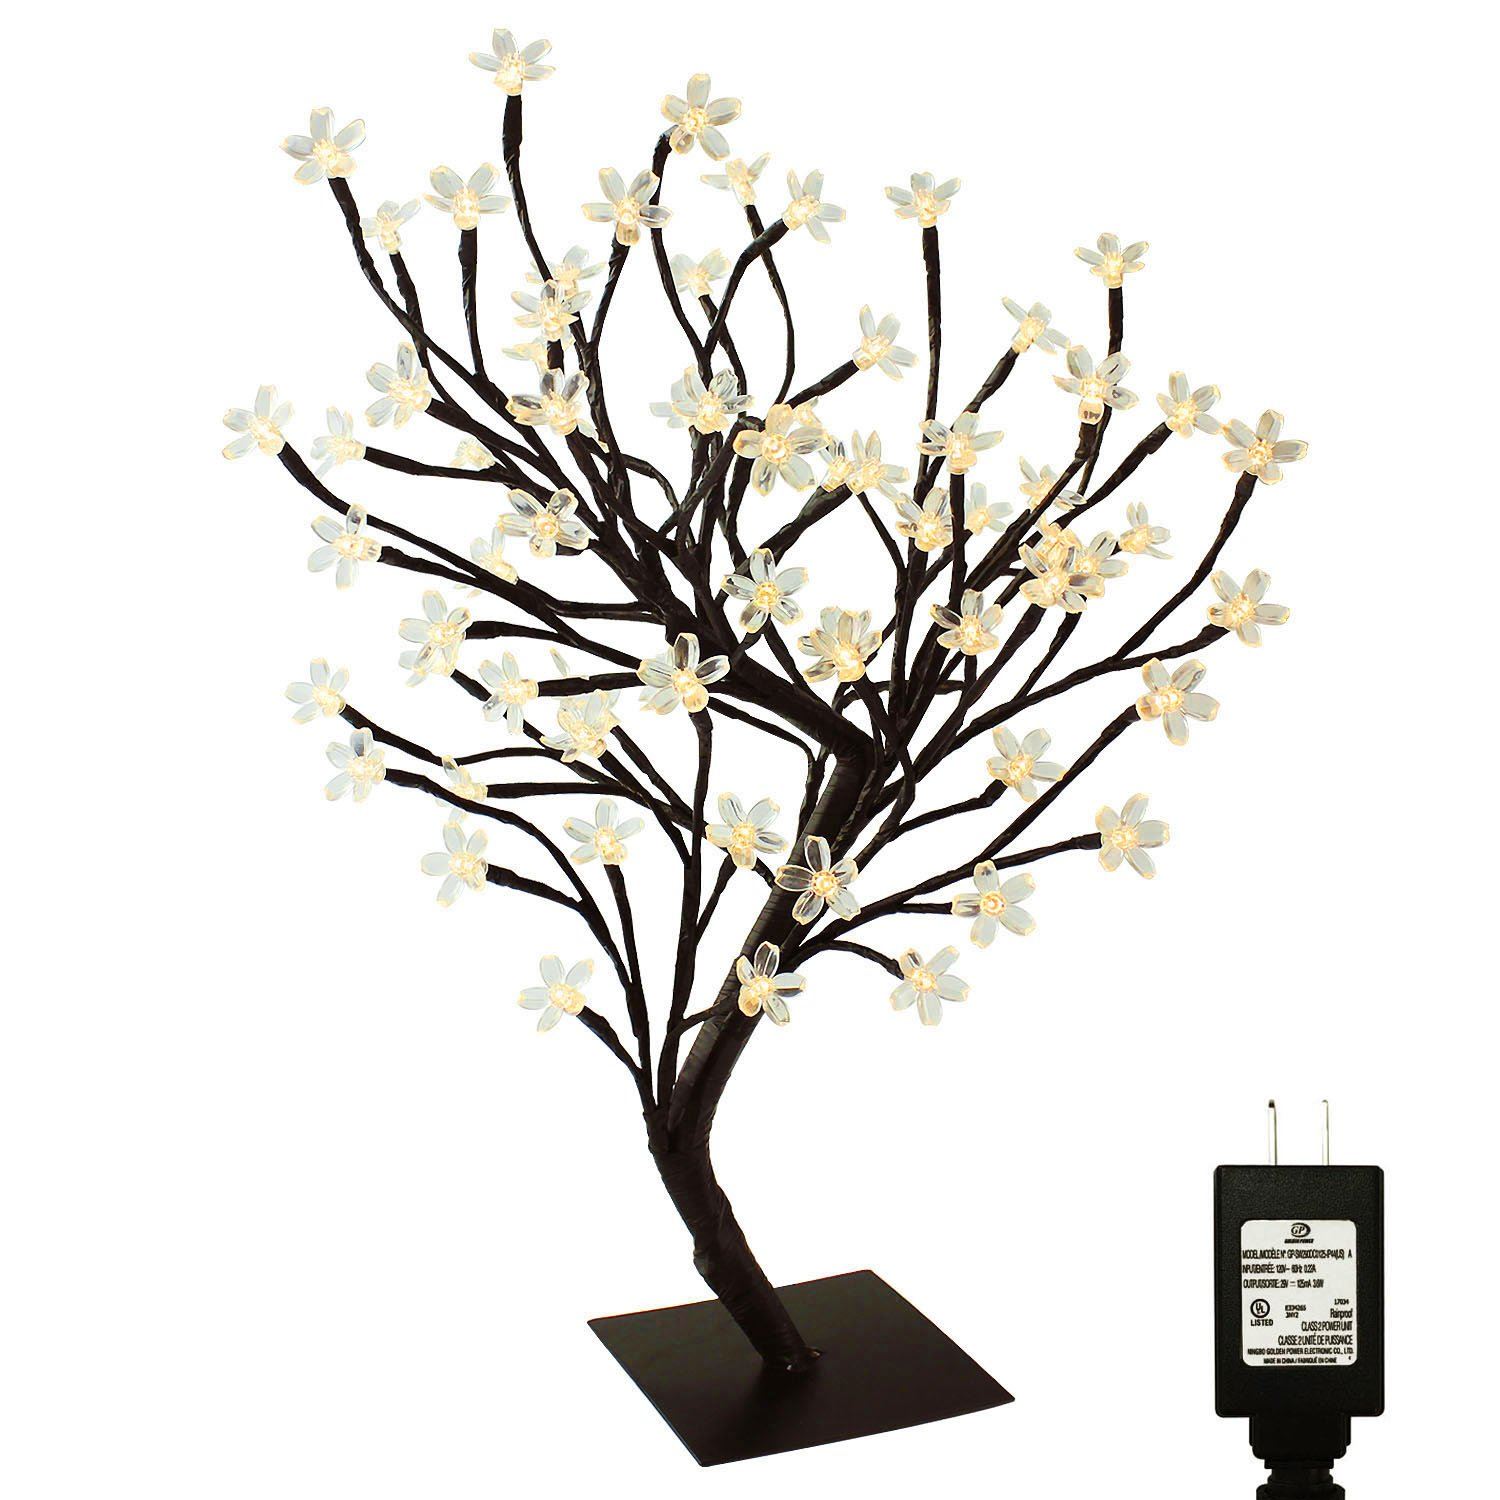 PMS 17inch 72 LEDs Cherry Blossom Desk Top Bonsai Tree Light with Low Voltage Transformer, UL Listed, Ideal for Christmas, Party, Wedding, Ceremony, Celebration Decoration(Warm White) by Pms